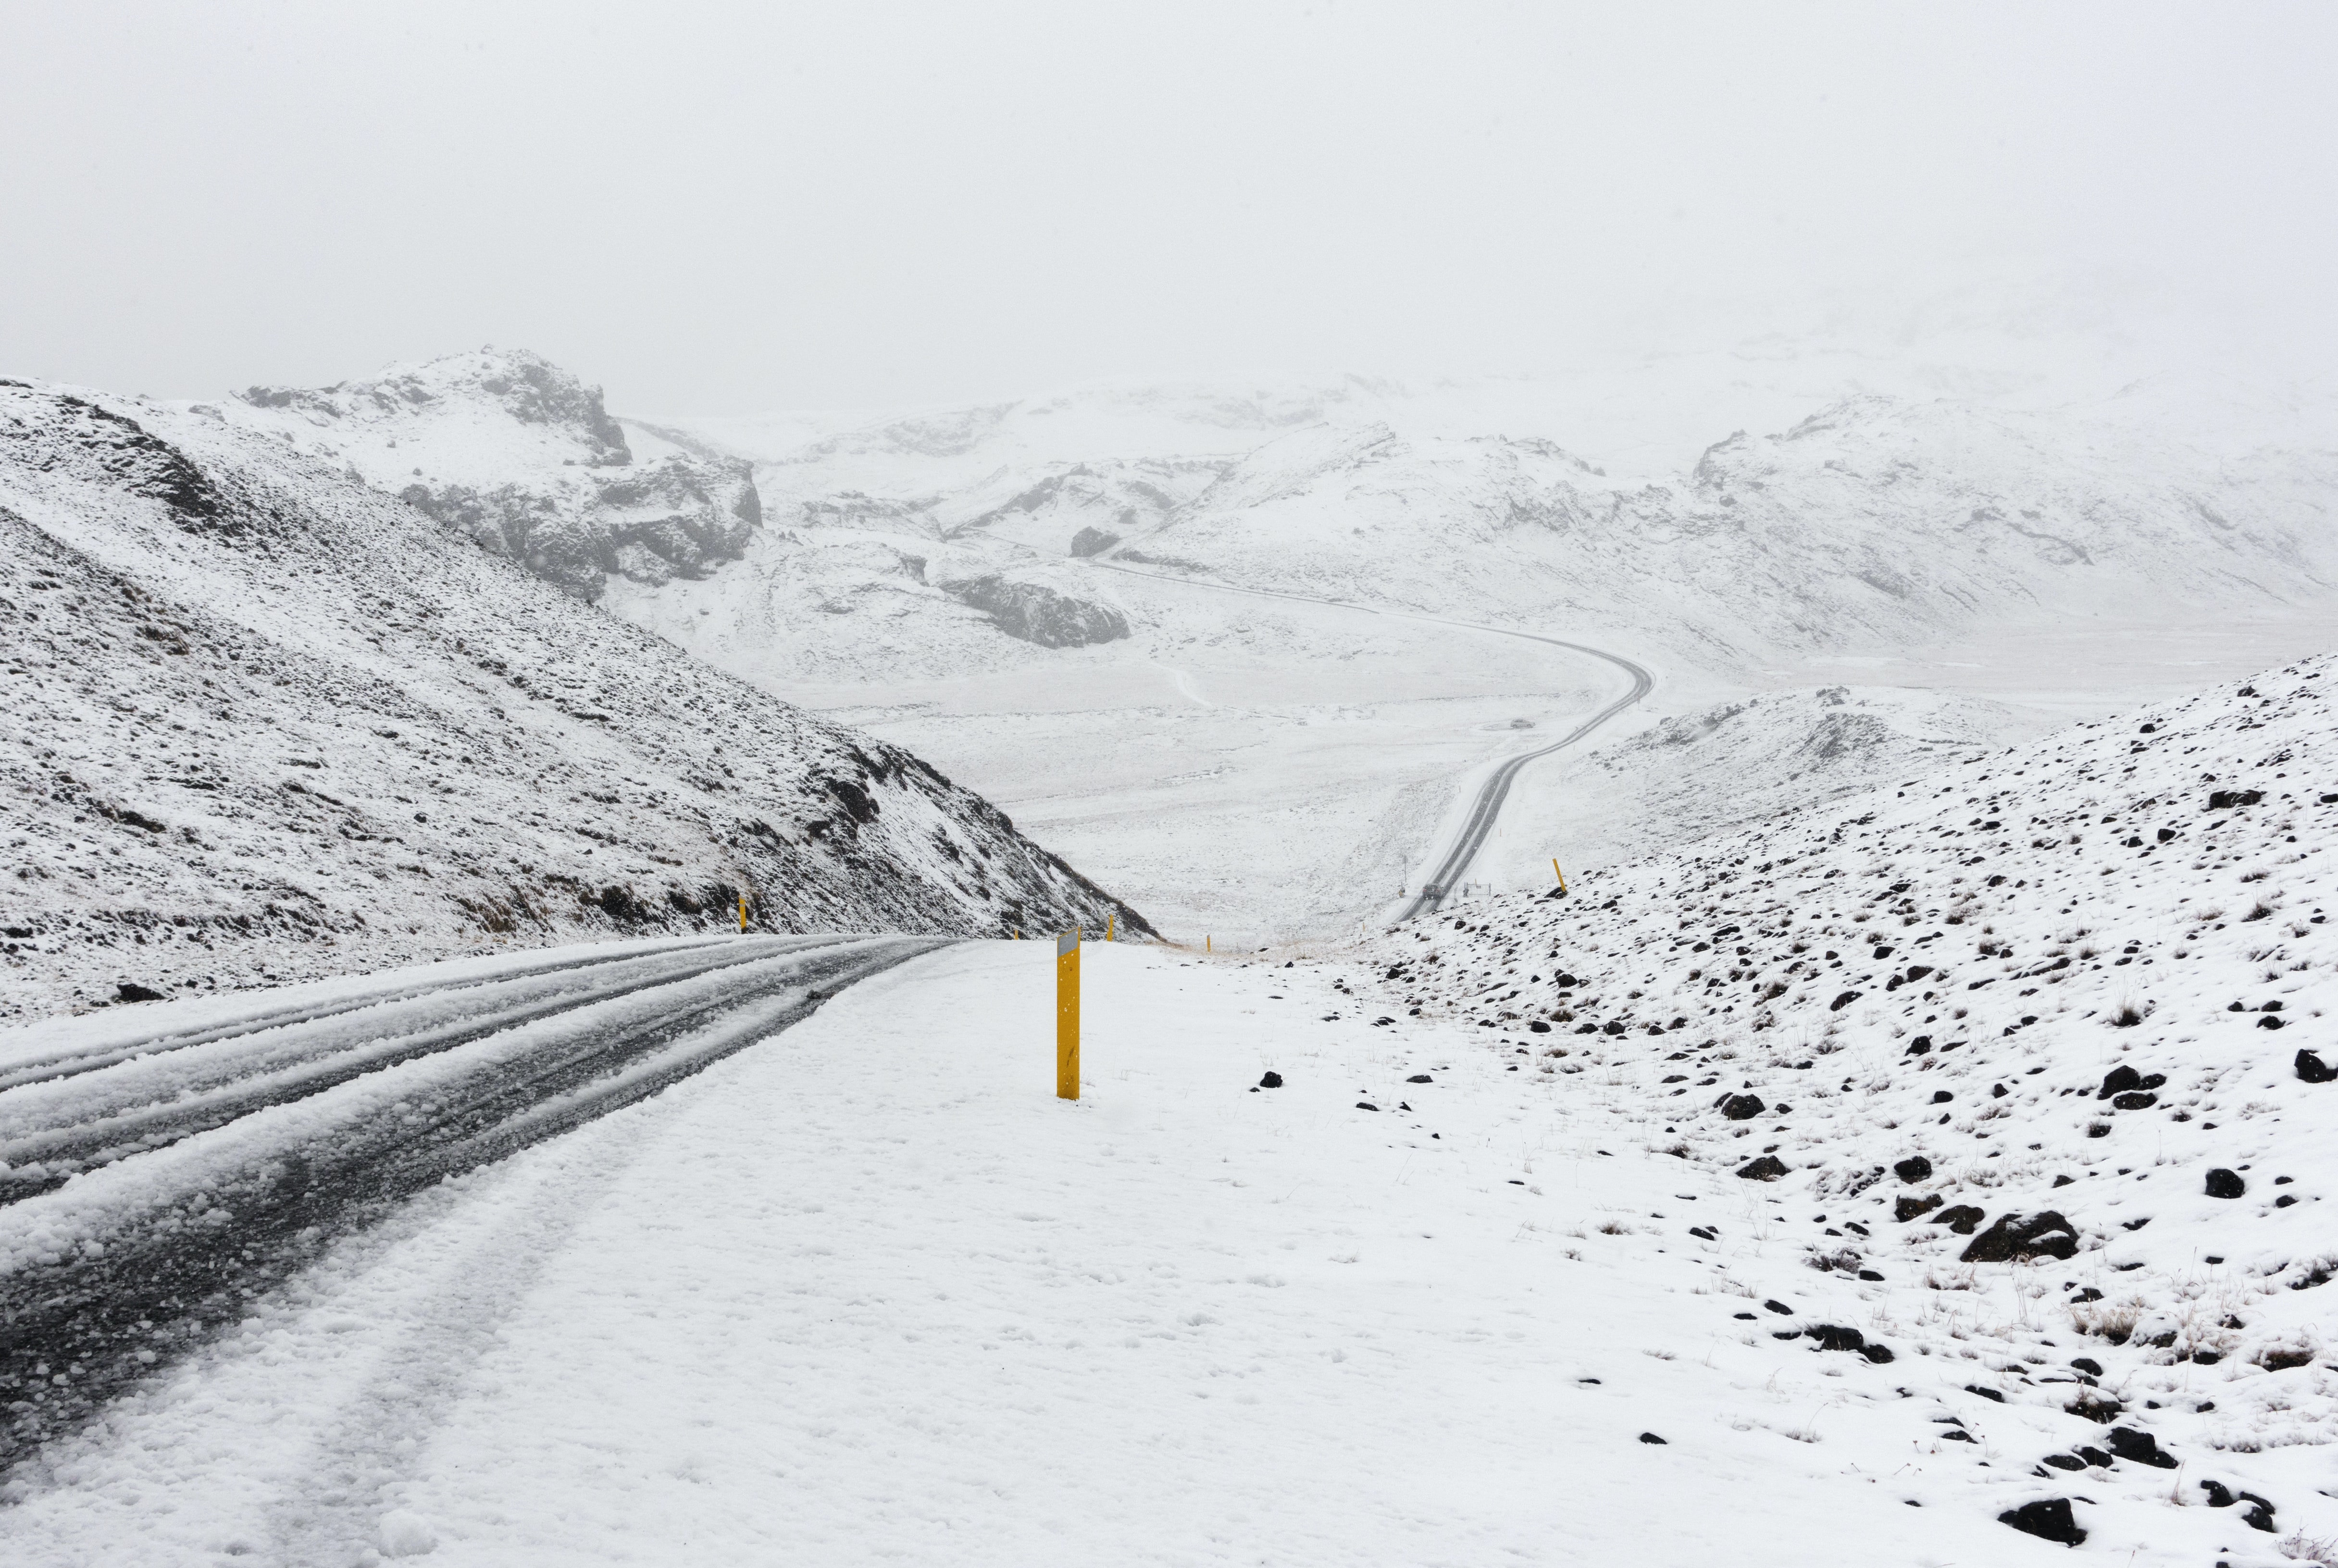 A hilled route along frozen mountaintops in Iceland